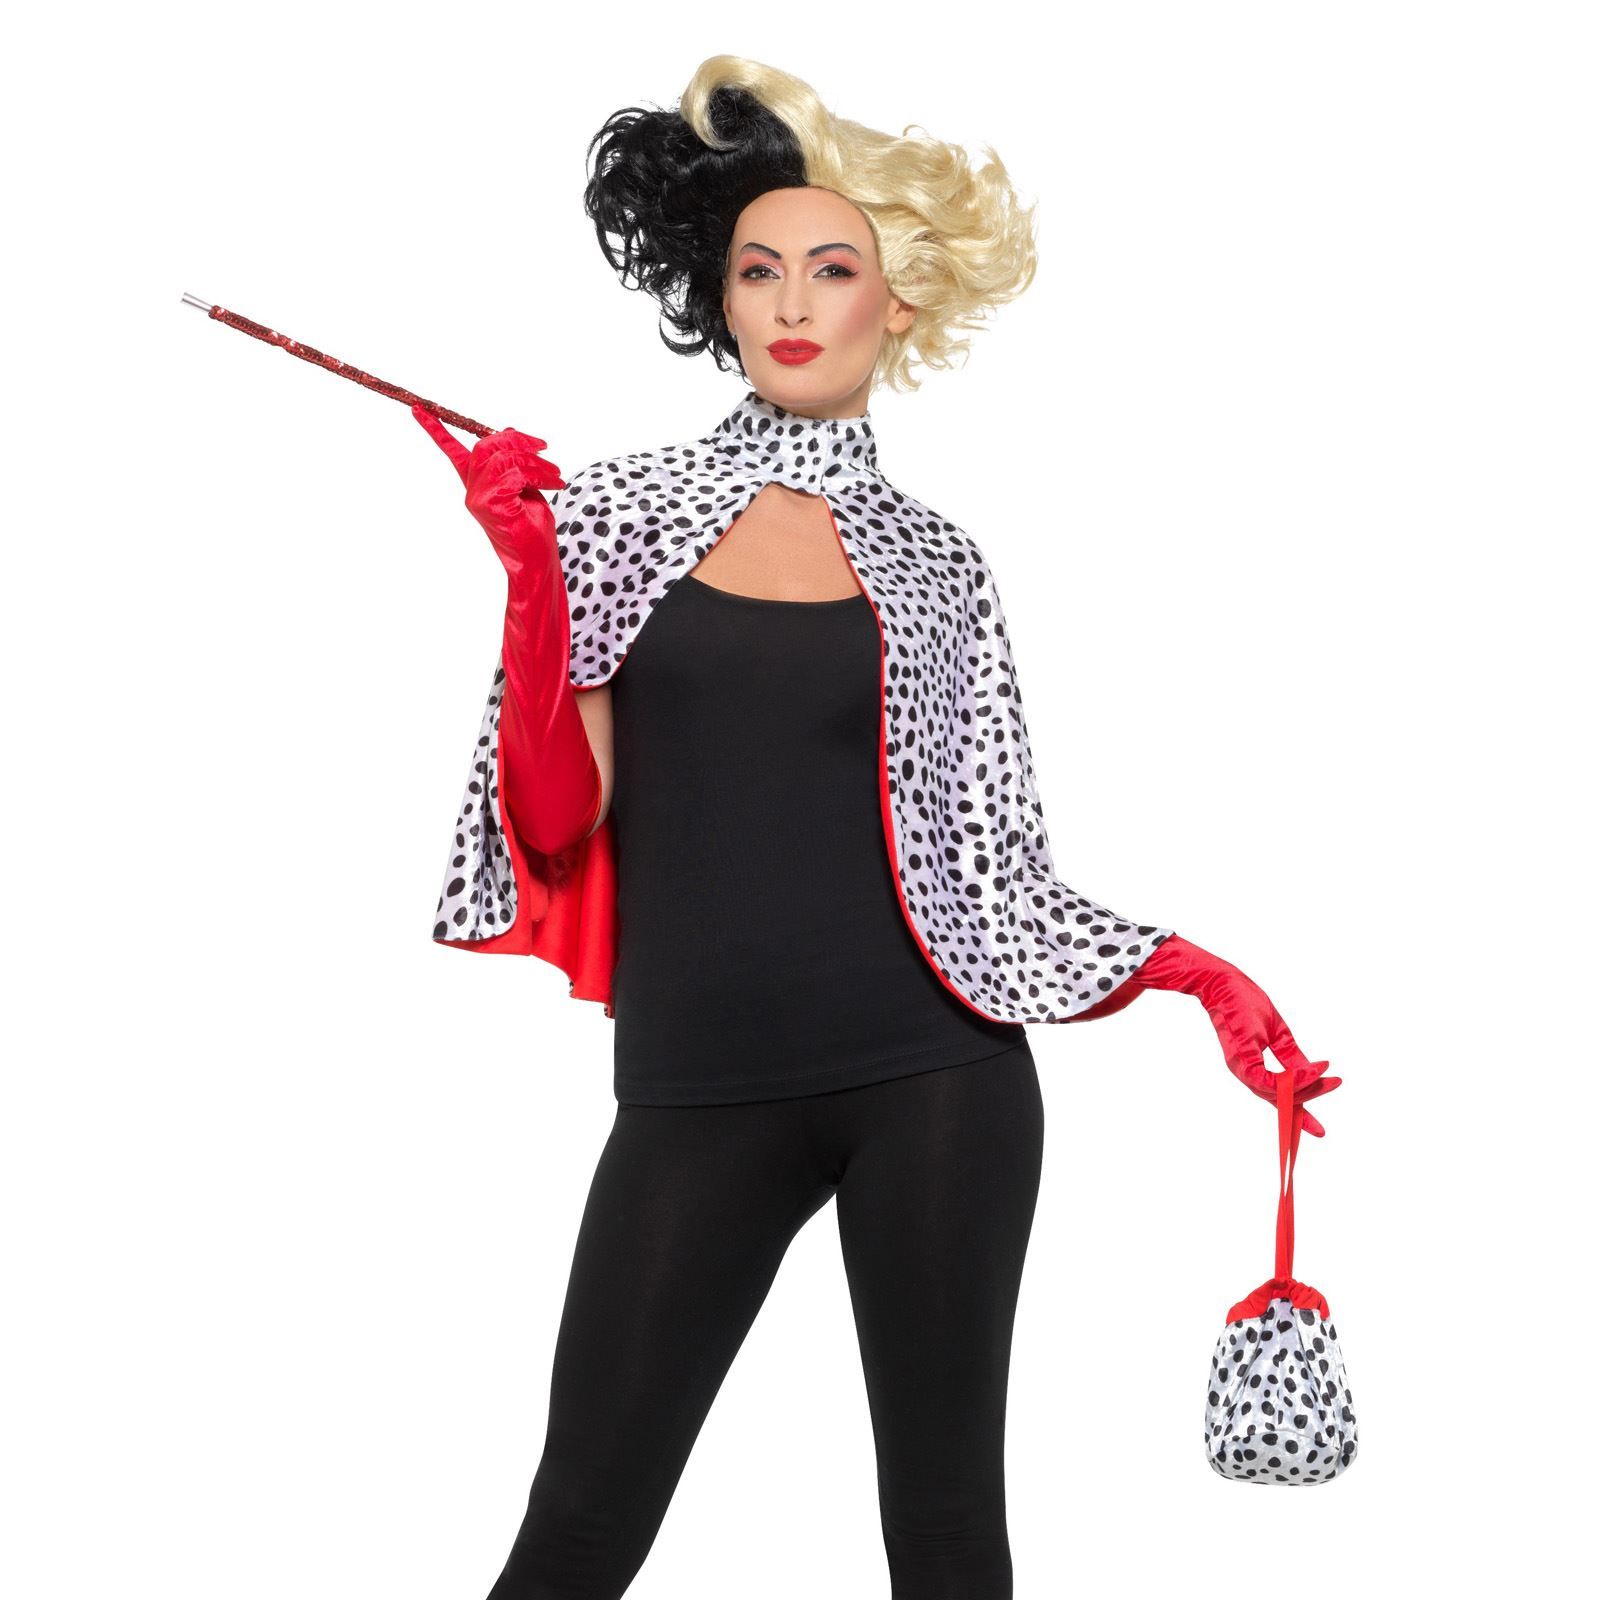 ladies cruella de vil evil madame cape costume book week fancy dress kit wig 5056212011544 ebay. Black Bedroom Furniture Sets. Home Design Ideas